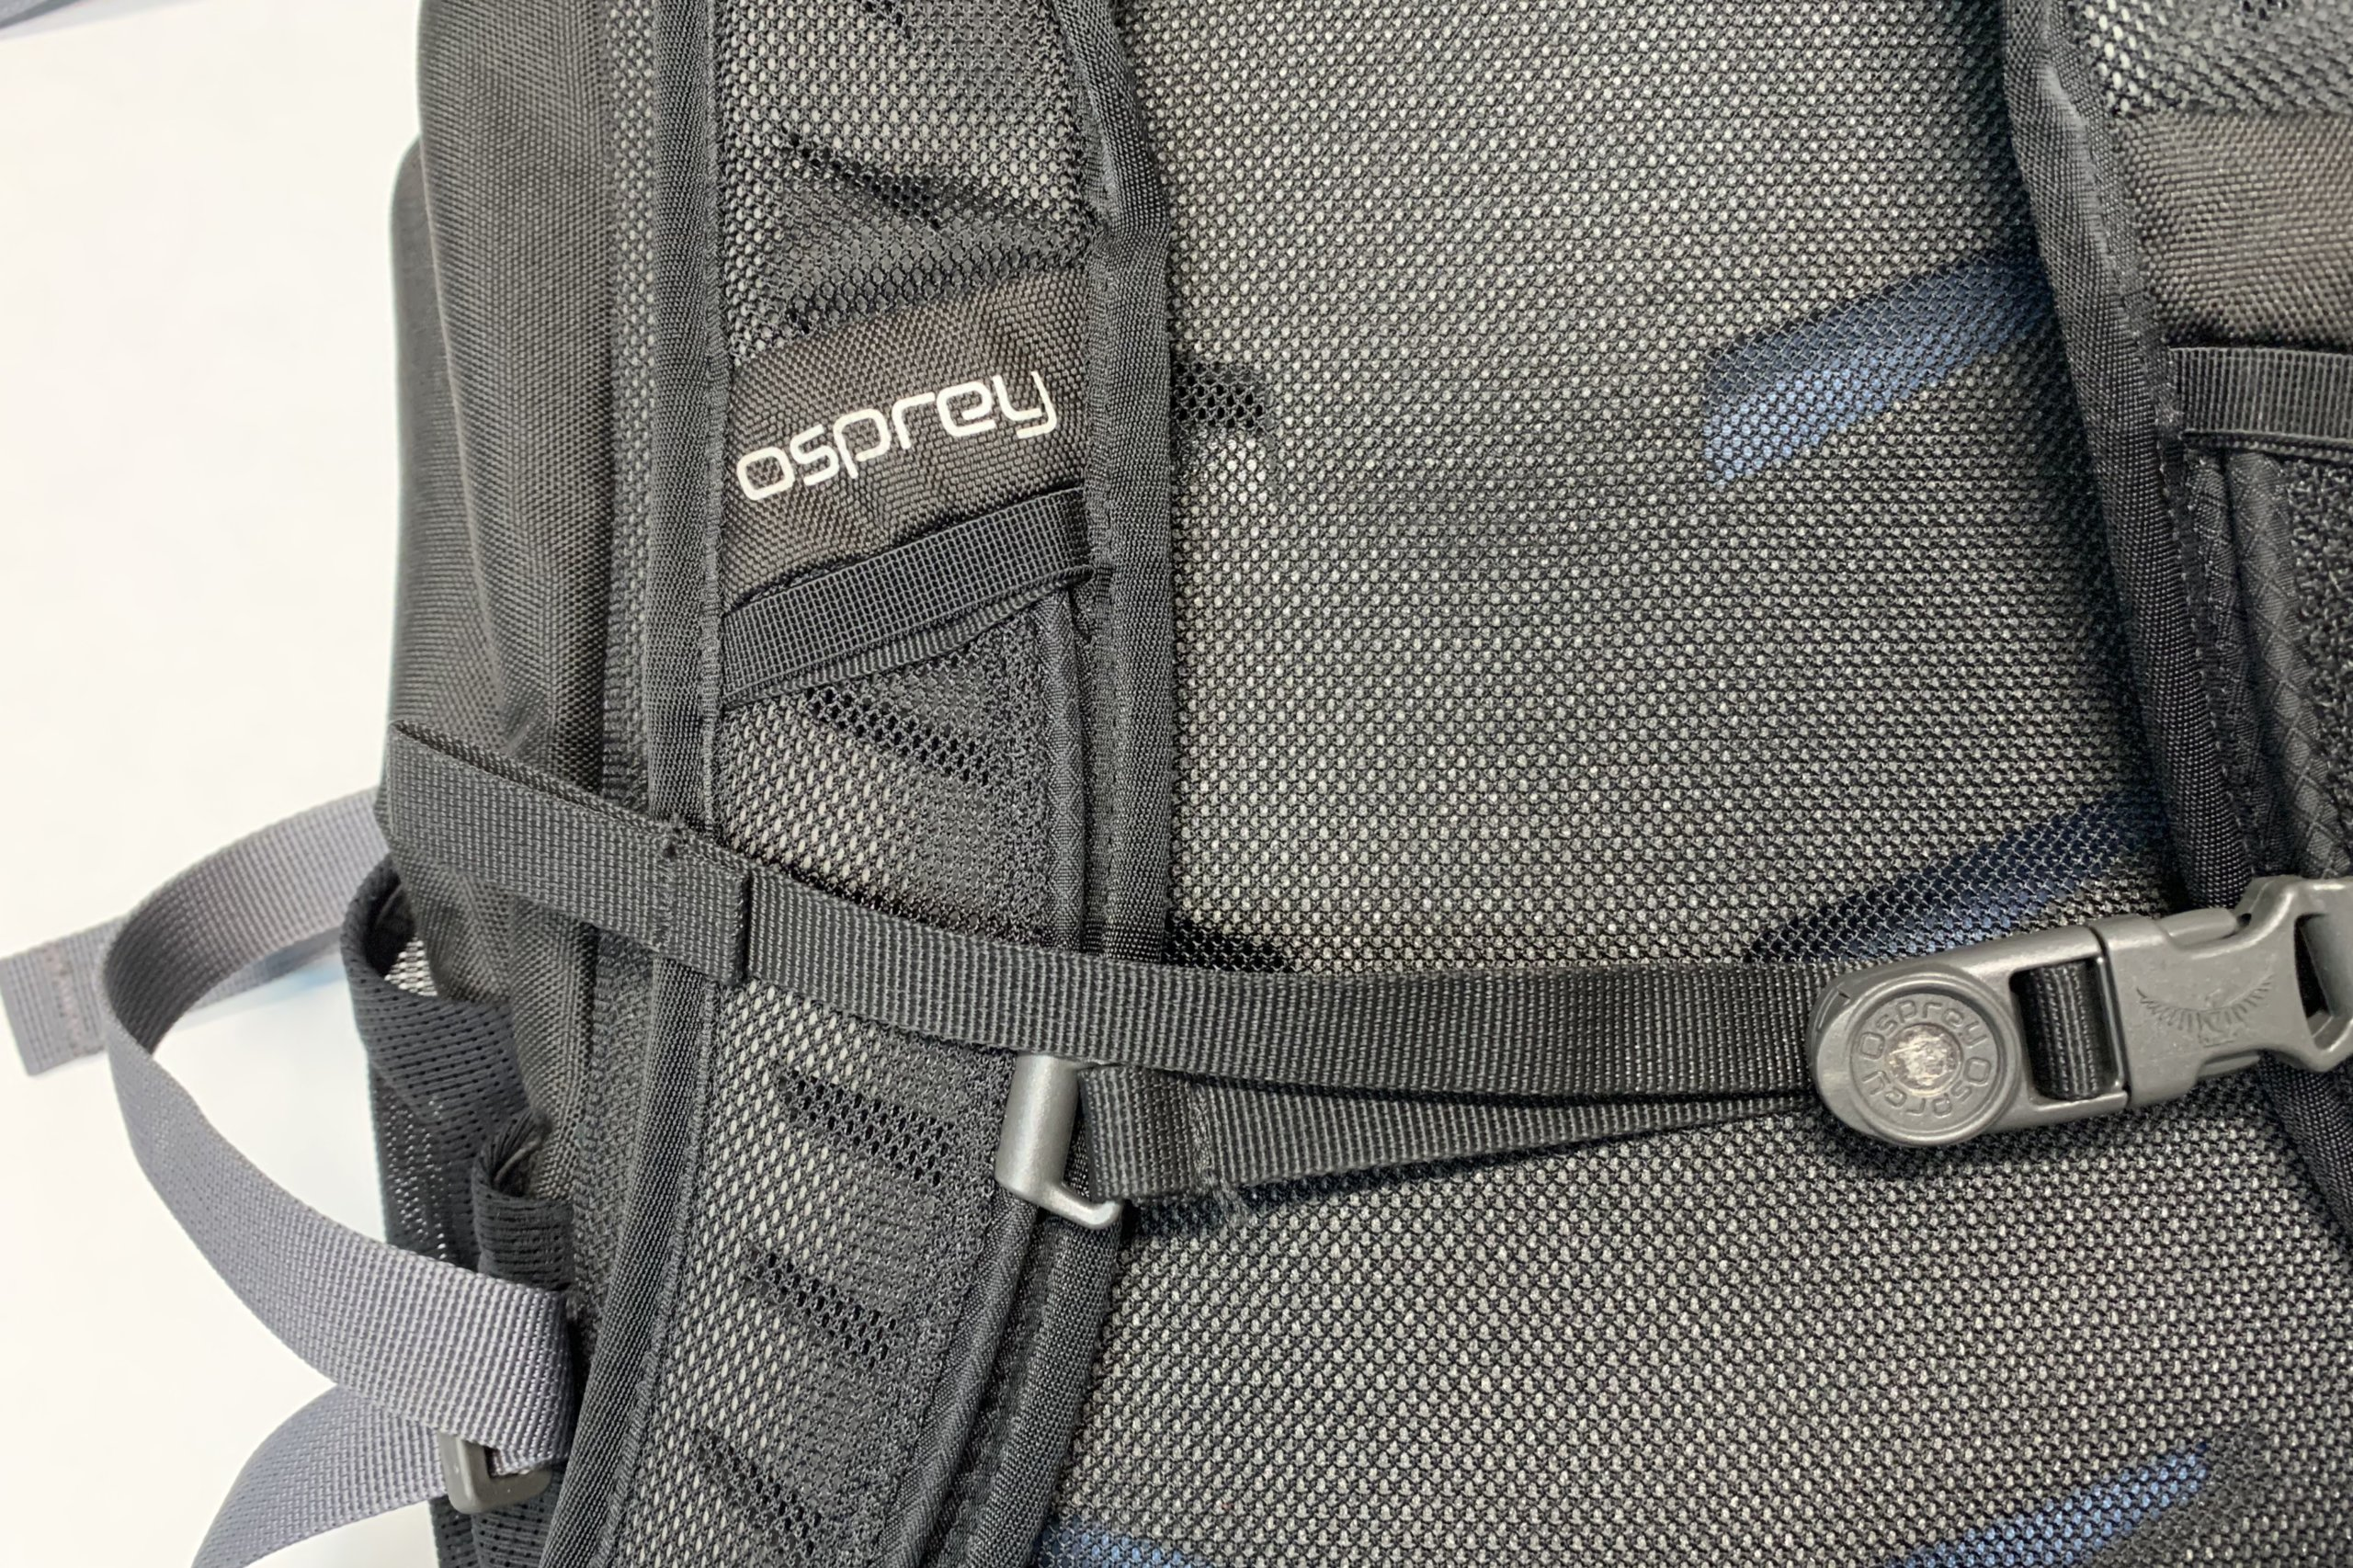 Osprey bag